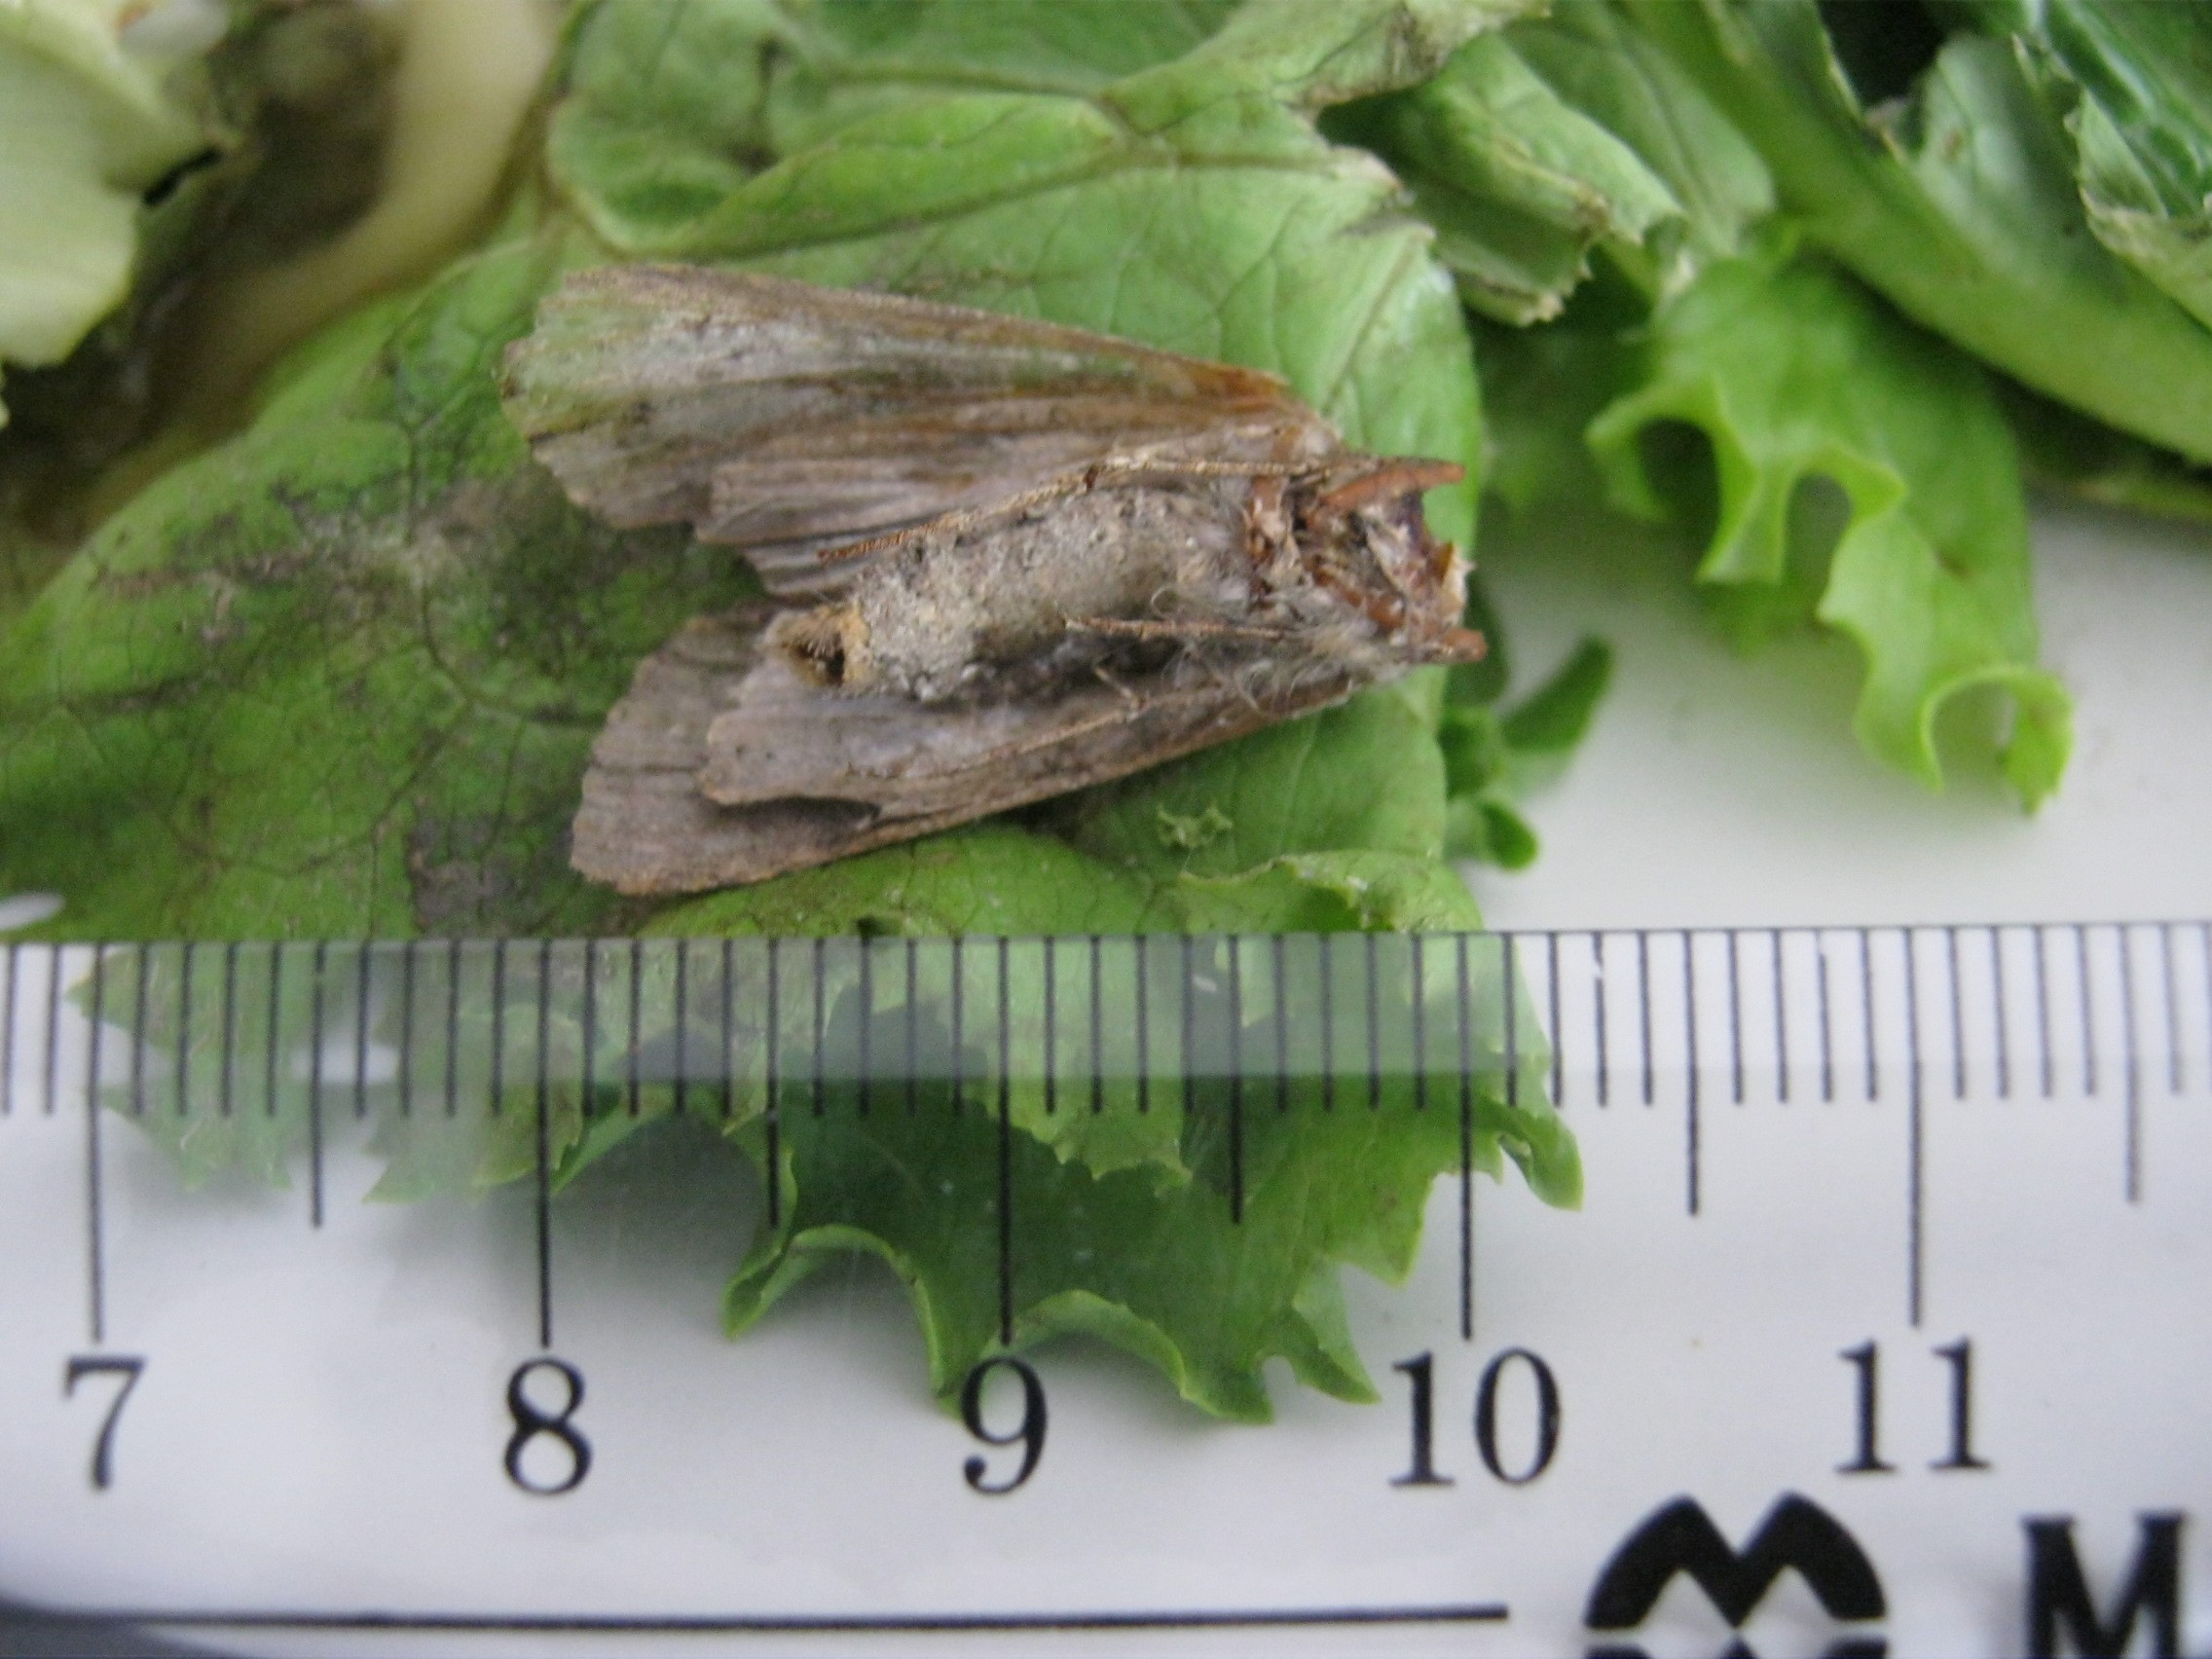 Dead moth found in ReadyPac salad